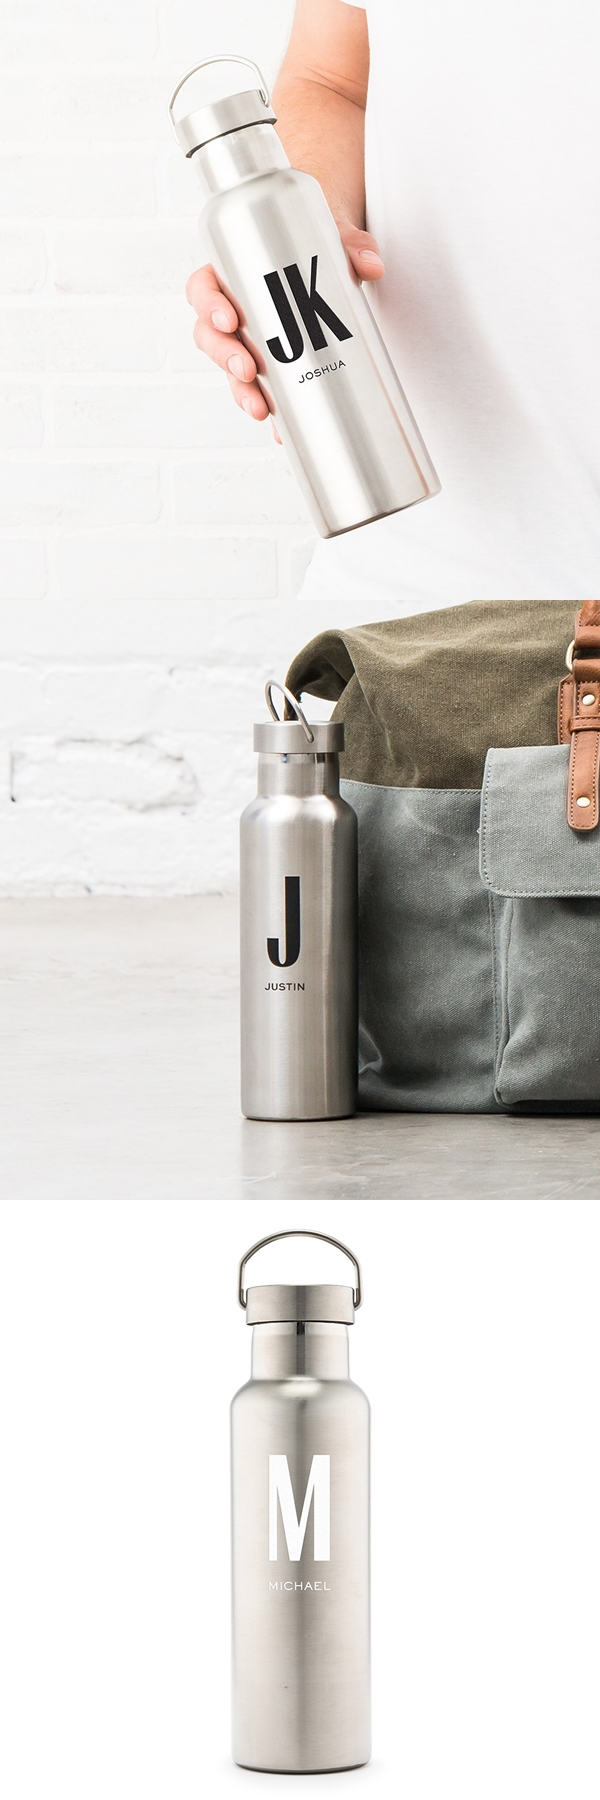 Personalized Chrome Water Bottle with Handle - Monogram Print